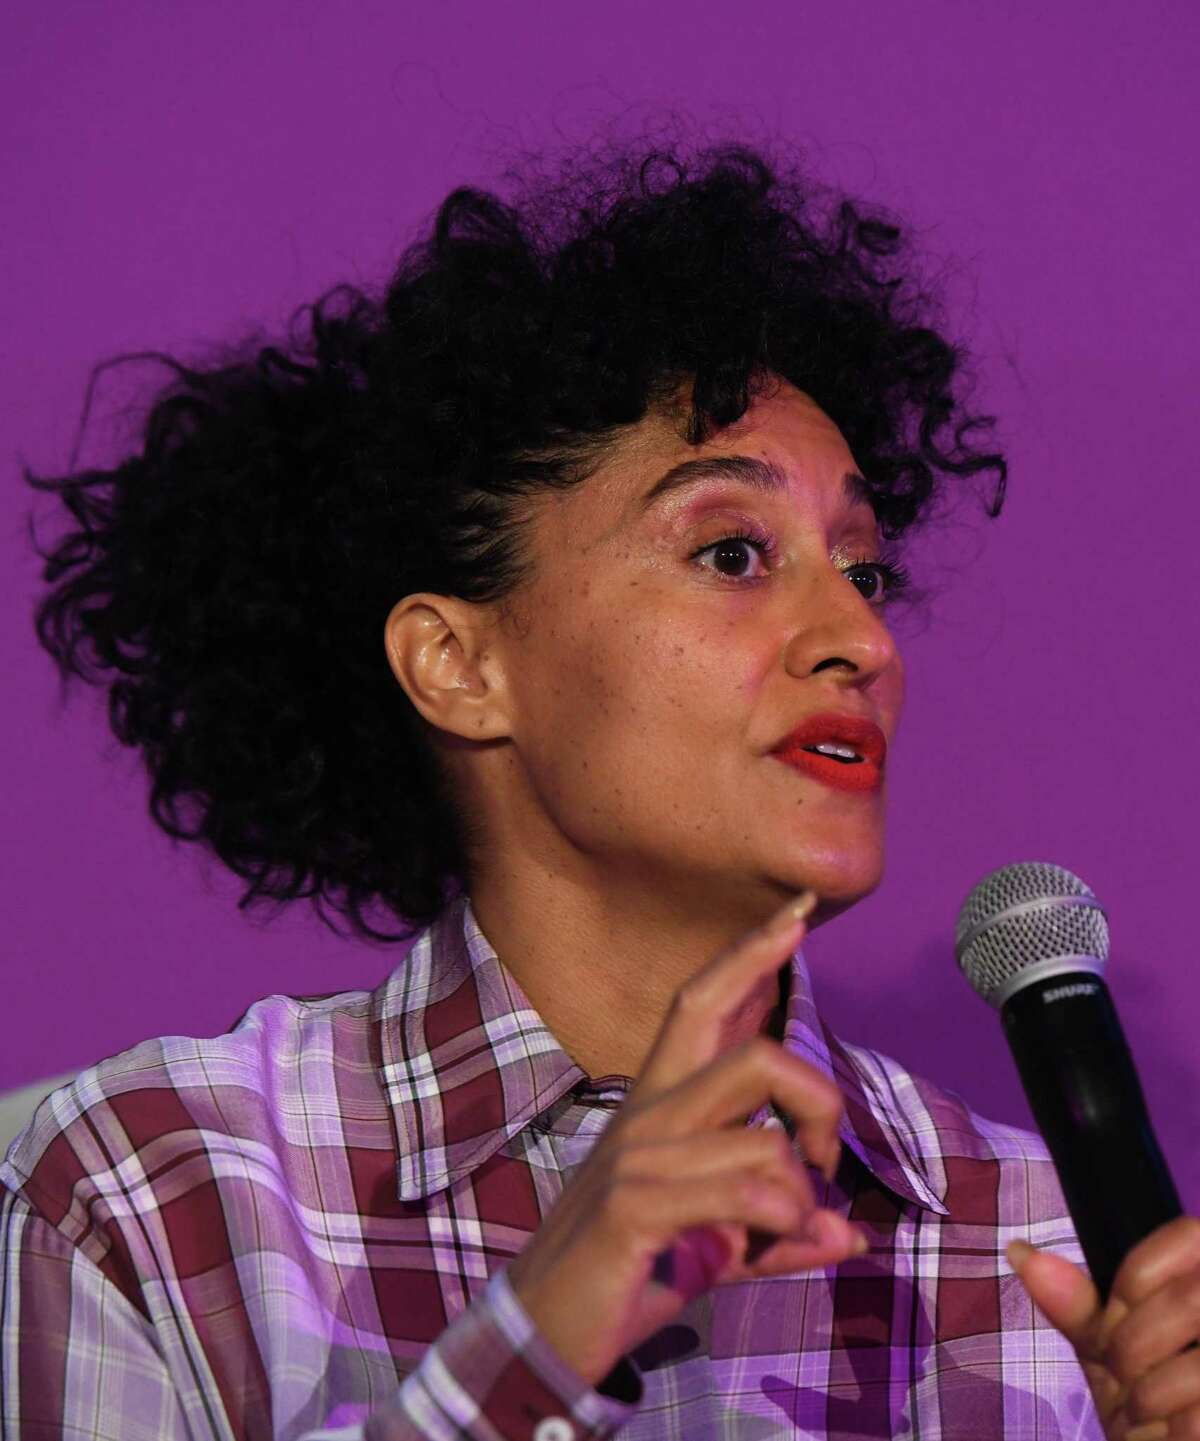 """Actress, producer and activist Tracee Ellis Ross delivers the keynote conversation """"Brave, Bold, You"""" during Fairfield County's Community Foundation Fund for Women & Girls annual luncheon at the Hyatt Regency in Old Greenwich, Conn. Thursday, April 4, 2019. Ross is known for her lead role on ABC's """"black-ish"""" and has won a Golden Globe along with several NAACP Image Awards for her work."""